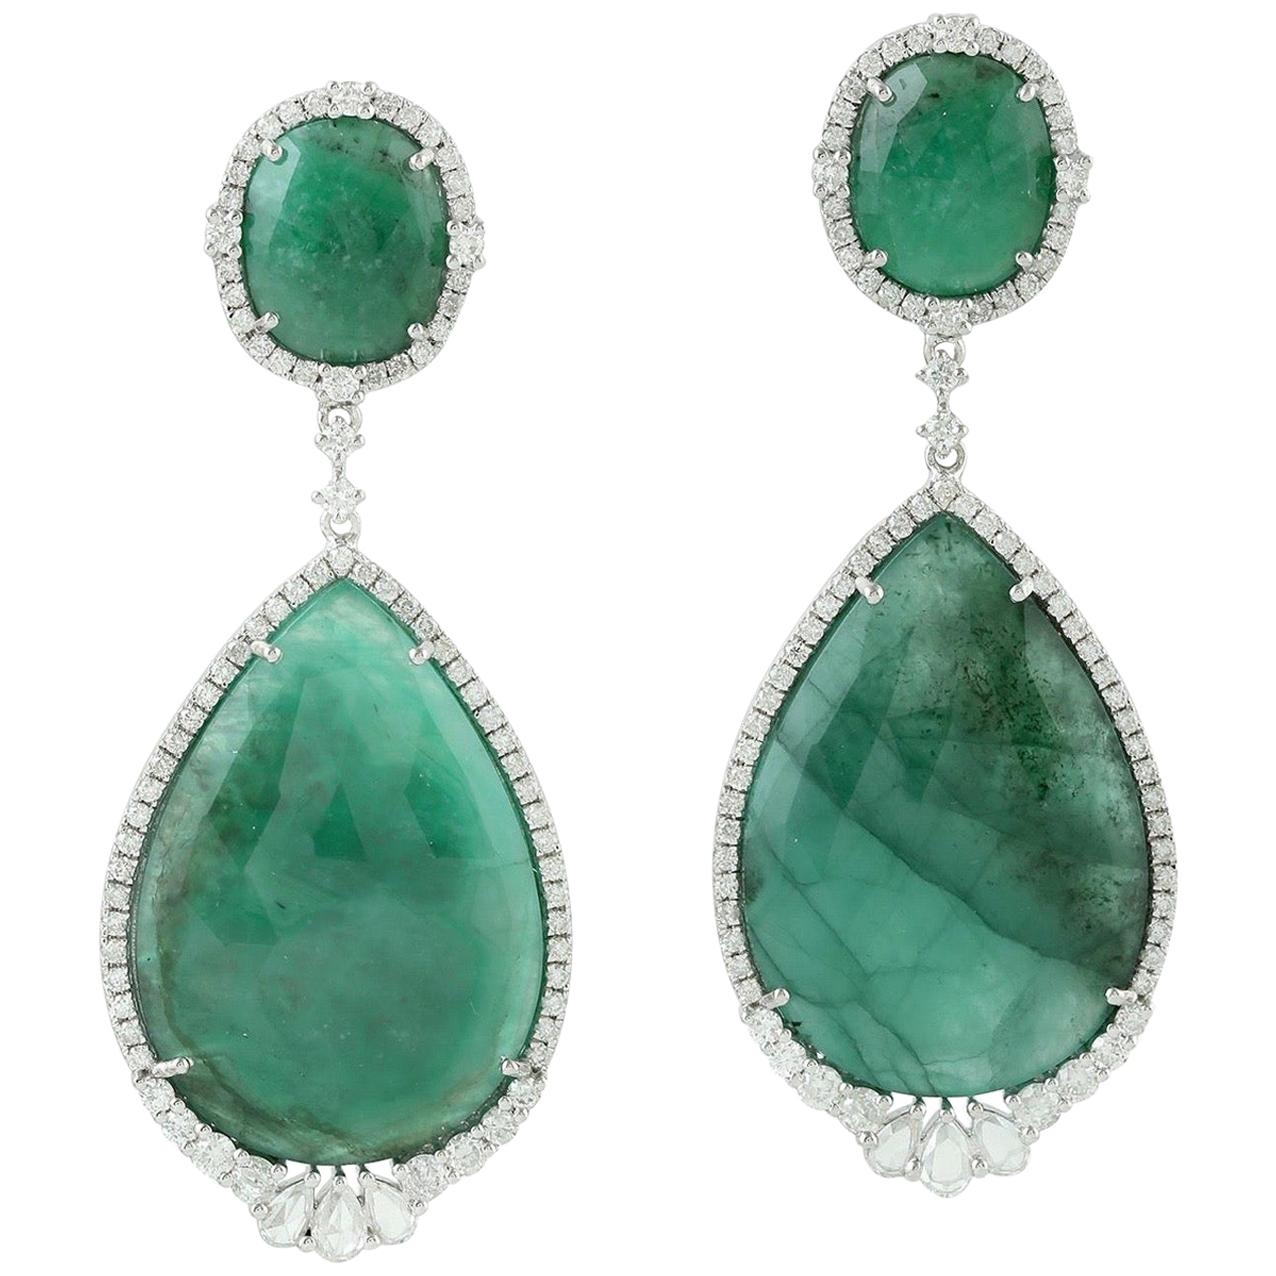 35.4 Carat Emerald Diamond 18 Karat Gold Earrings